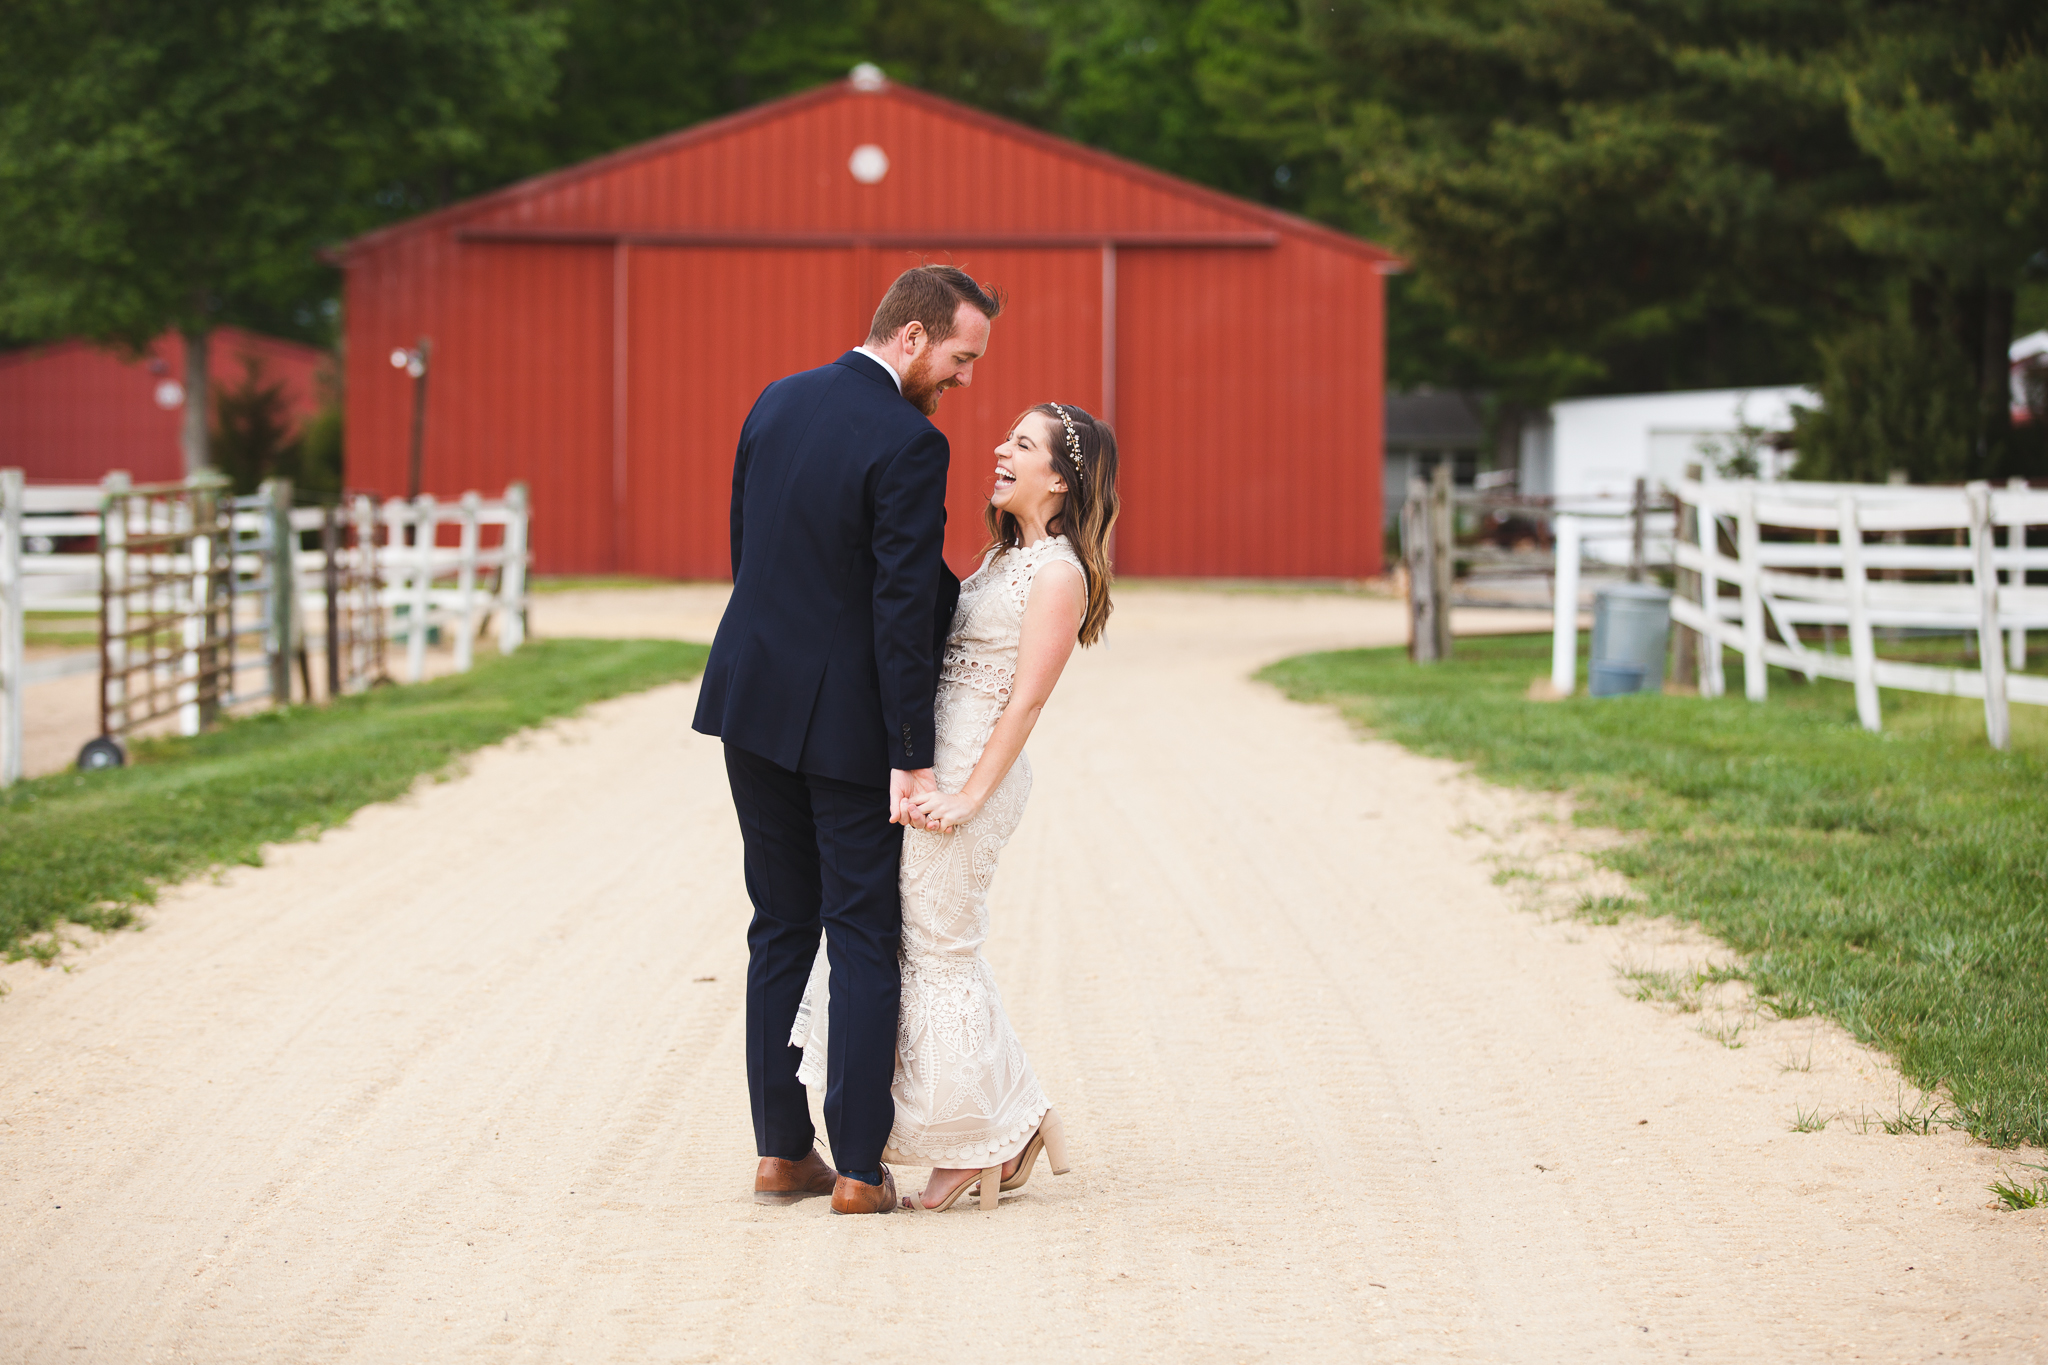 Family Farm Wedding in South Jersey Photography - Rustic Barn NJ - Millville, Vineland, Pittsgrove, Cape May, Ocean City - Creative Photographer, Candid, Joyful, Adventure. Elopement, Casual